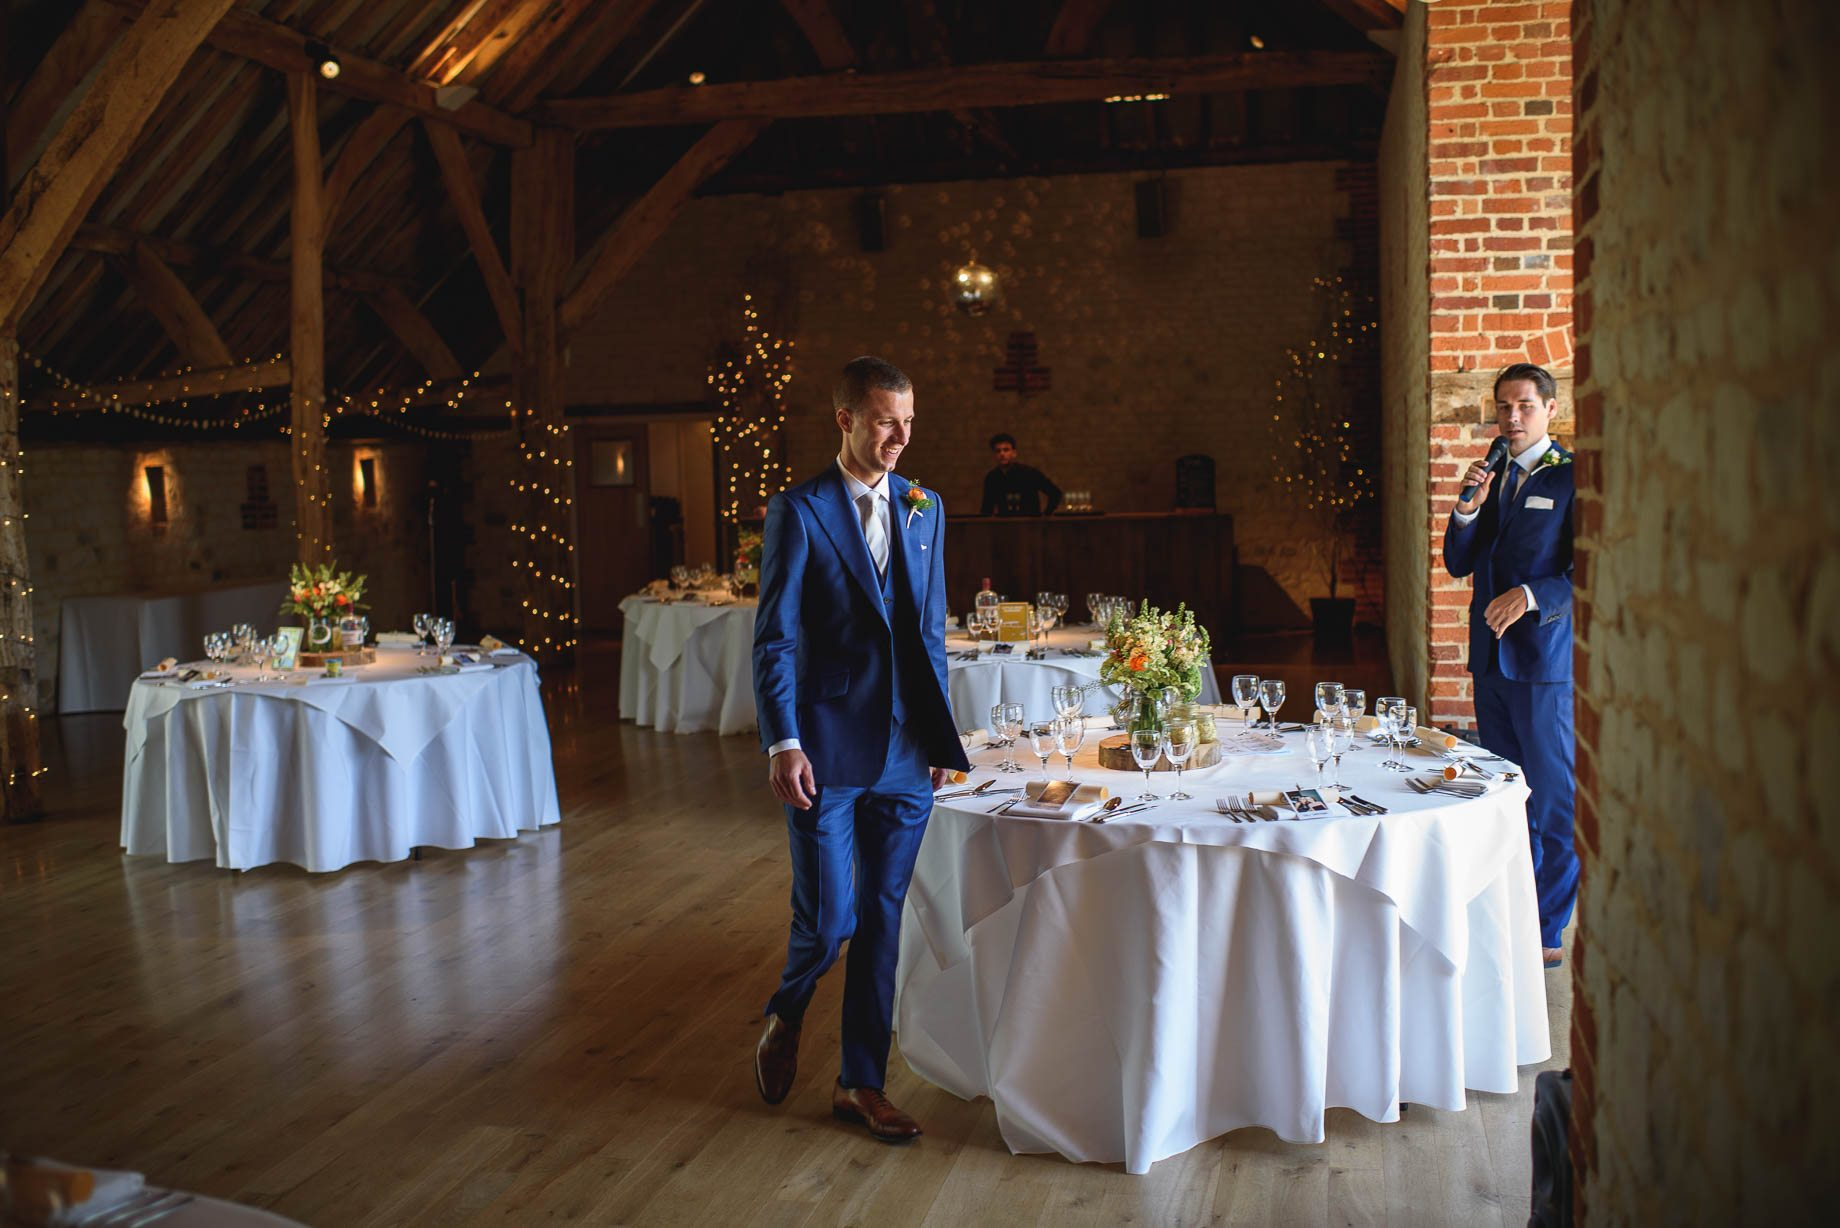 Bury Court Barn wedding photography by Guy Collier - Jo and Jamie (27 of 160)